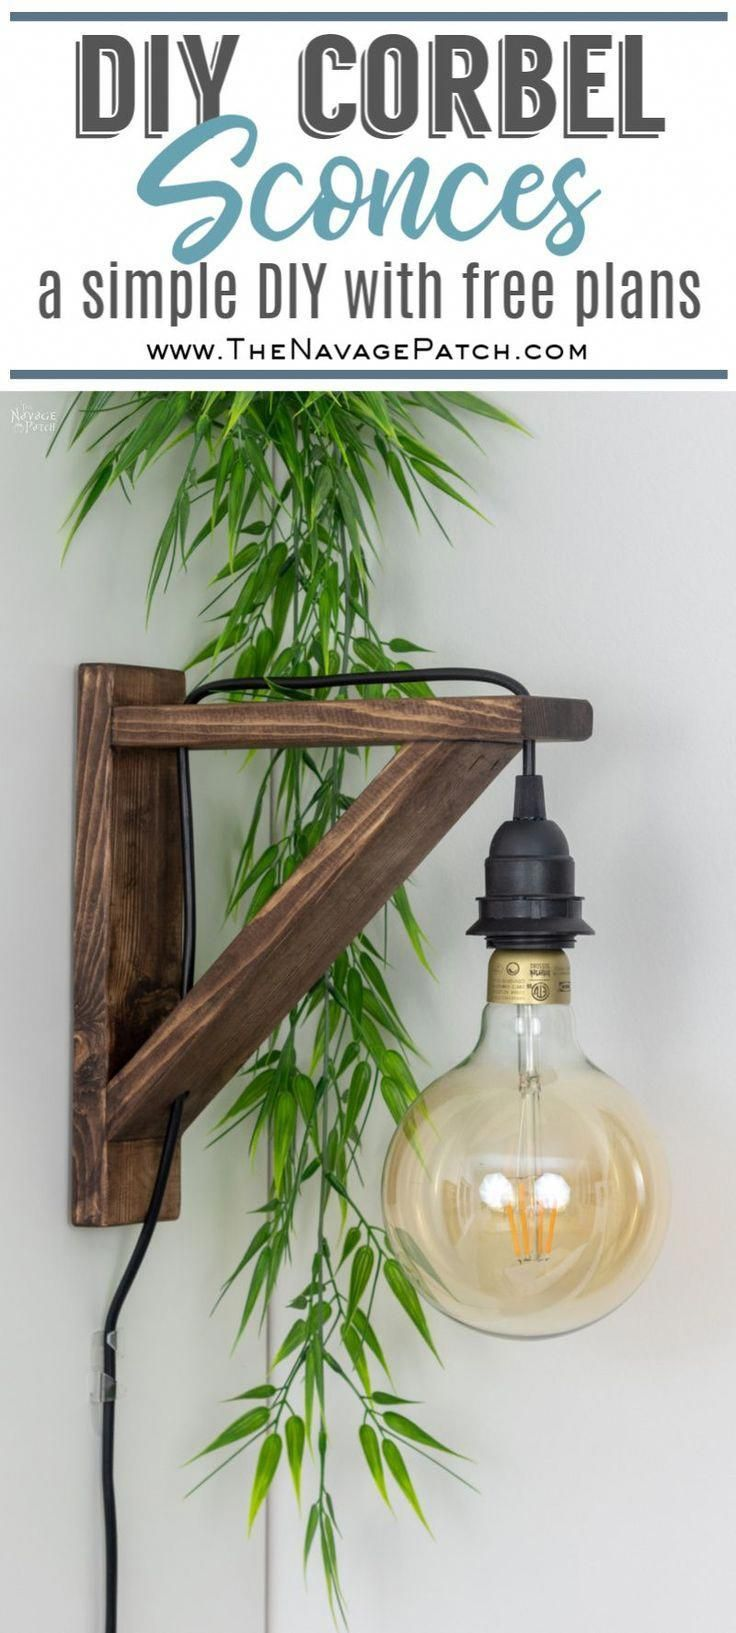 Diy Corbel Sconces With Free Plans How To Make Corbel Wall Sconce For Under 25 Diy Bedroom Light Bedroom Lighting Diy Diy Sconces Farmhouse Style Lighting